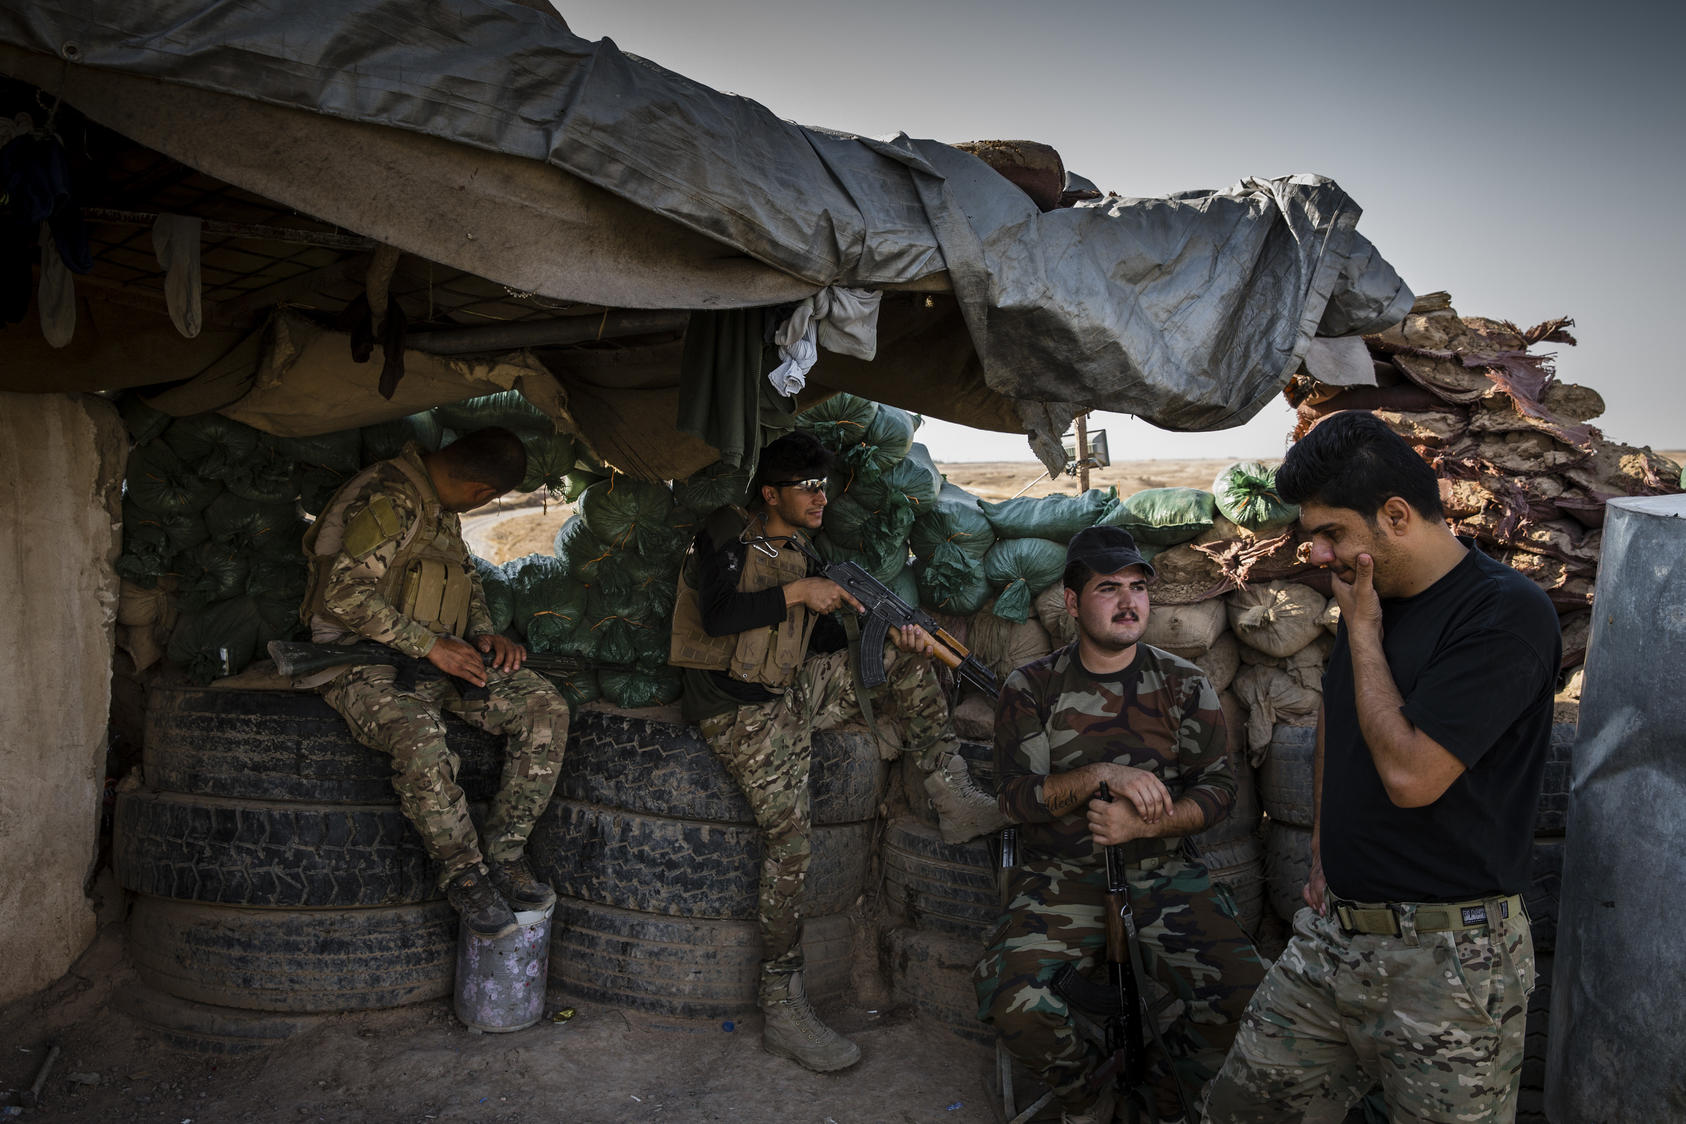 Kurdish peshmerga soldiers at a front-line position along the eastern edge of territory still held by Islamic State militants, near the city of Hawija, Iraq, Aug. 27, 2017.